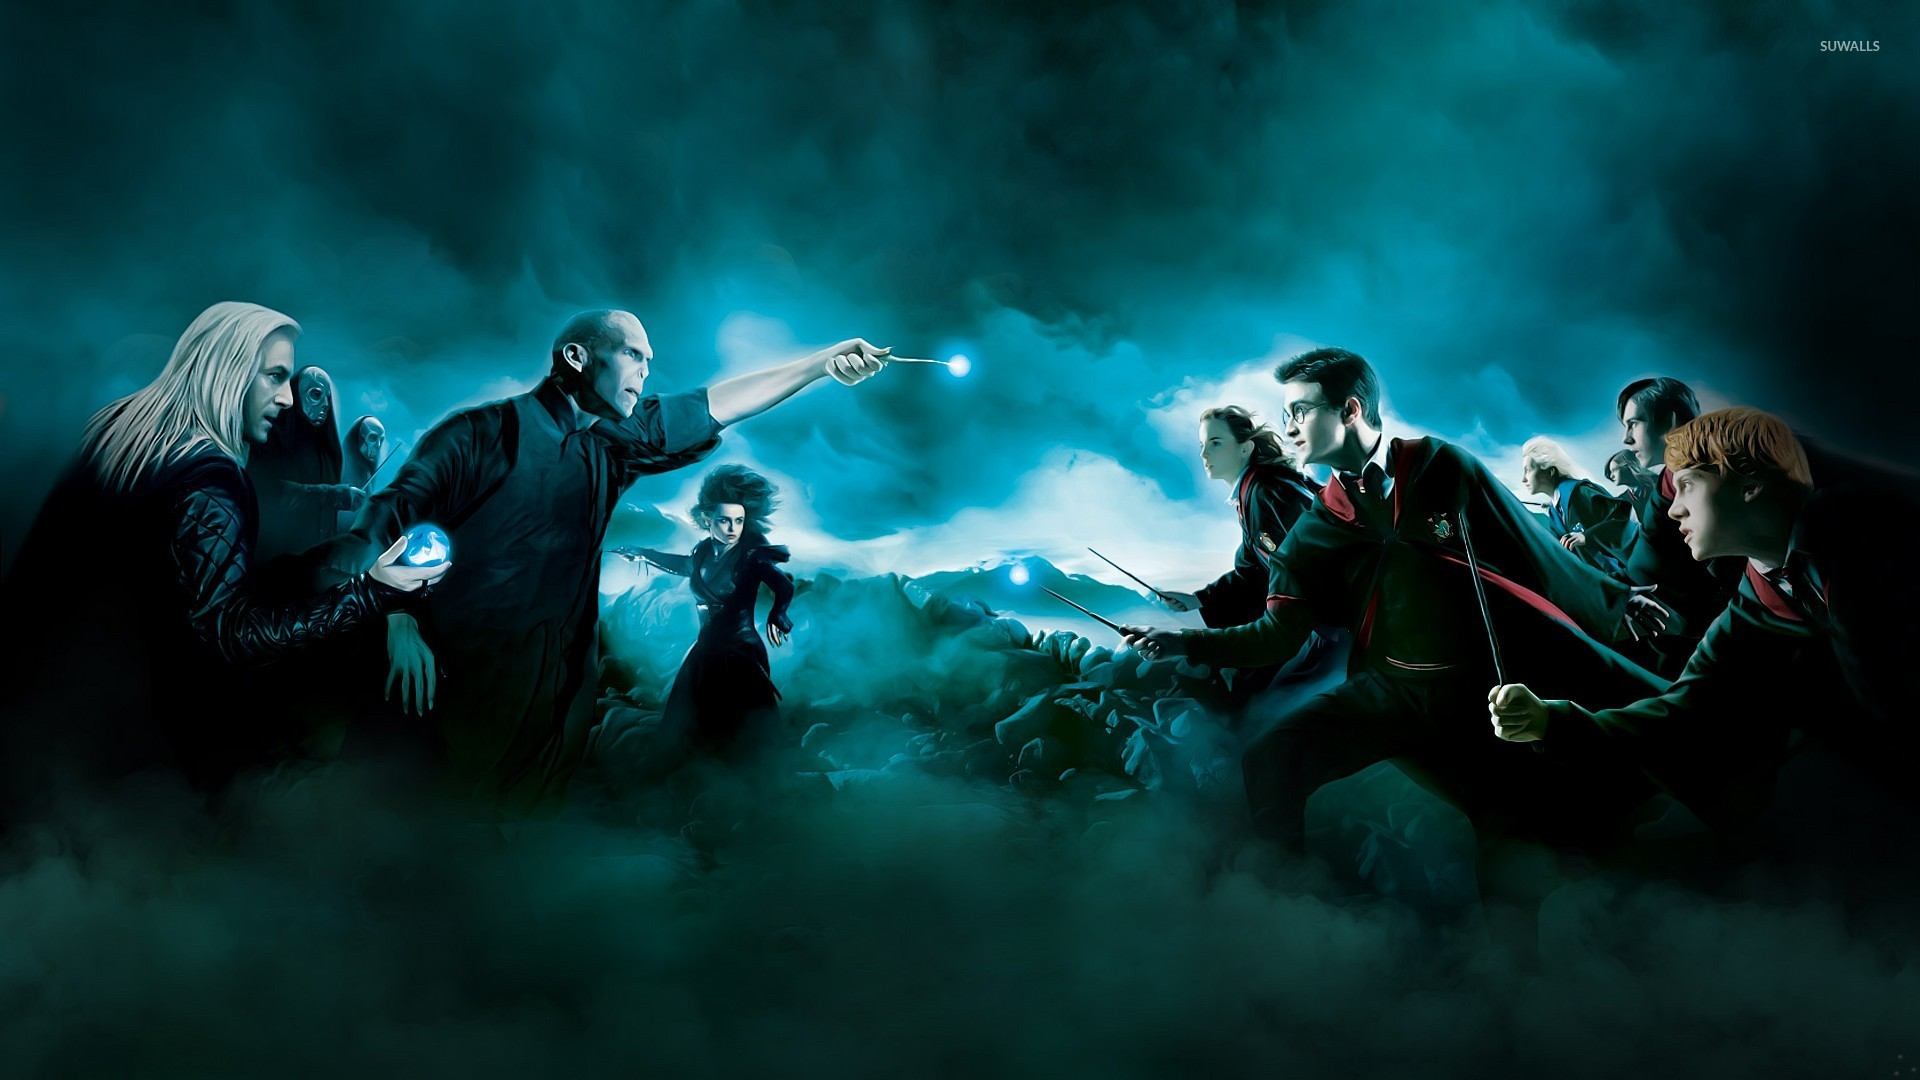 Harry Potter And The Deathly Hallows 2 Wallpaper Movie